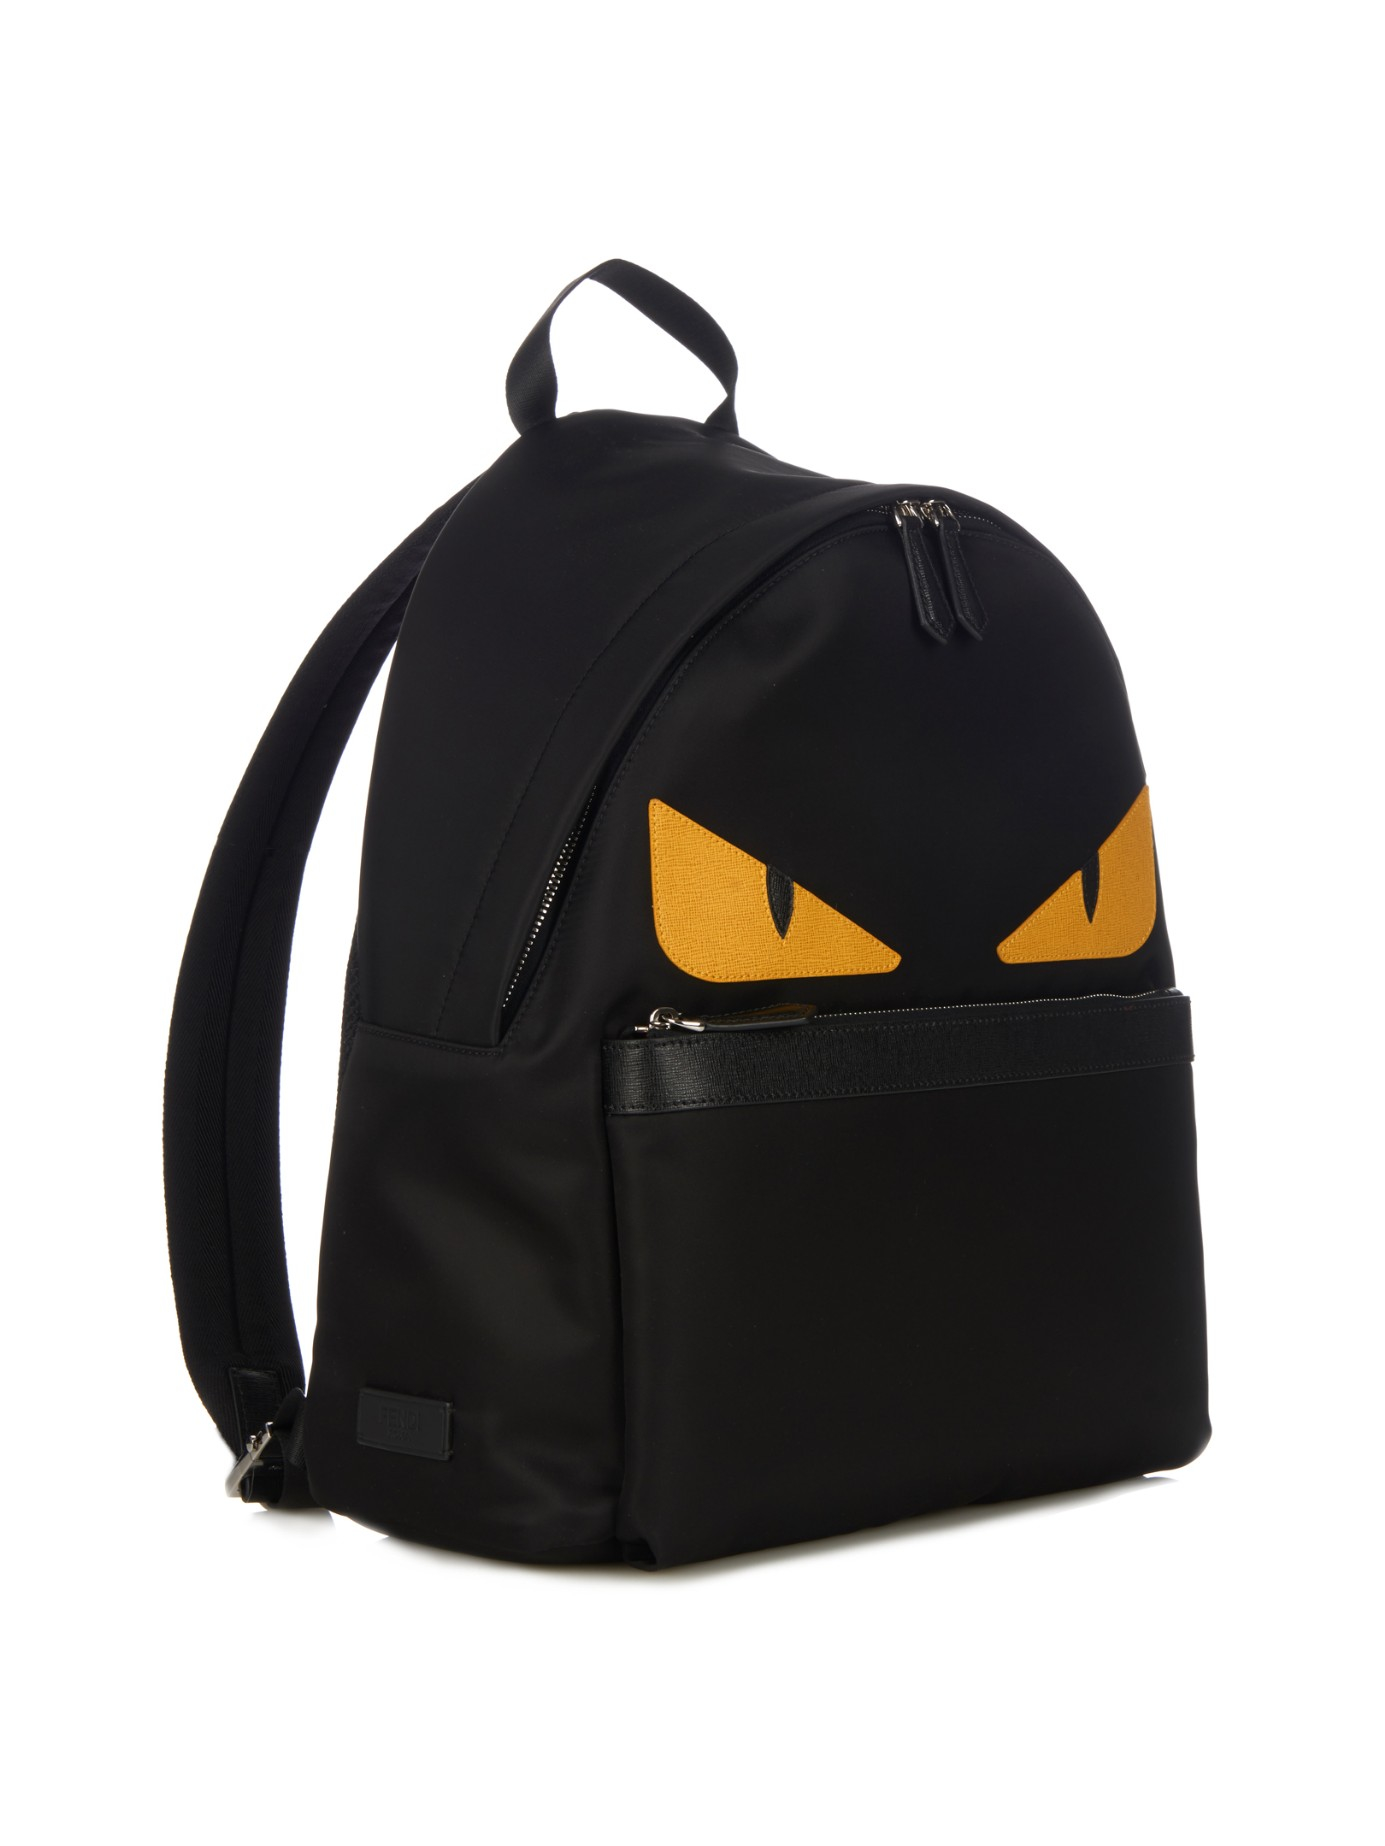 Lyst - Fendi Bag Bugs Nylon And Leather Backpack in Black for Men 3e8a758c7a120